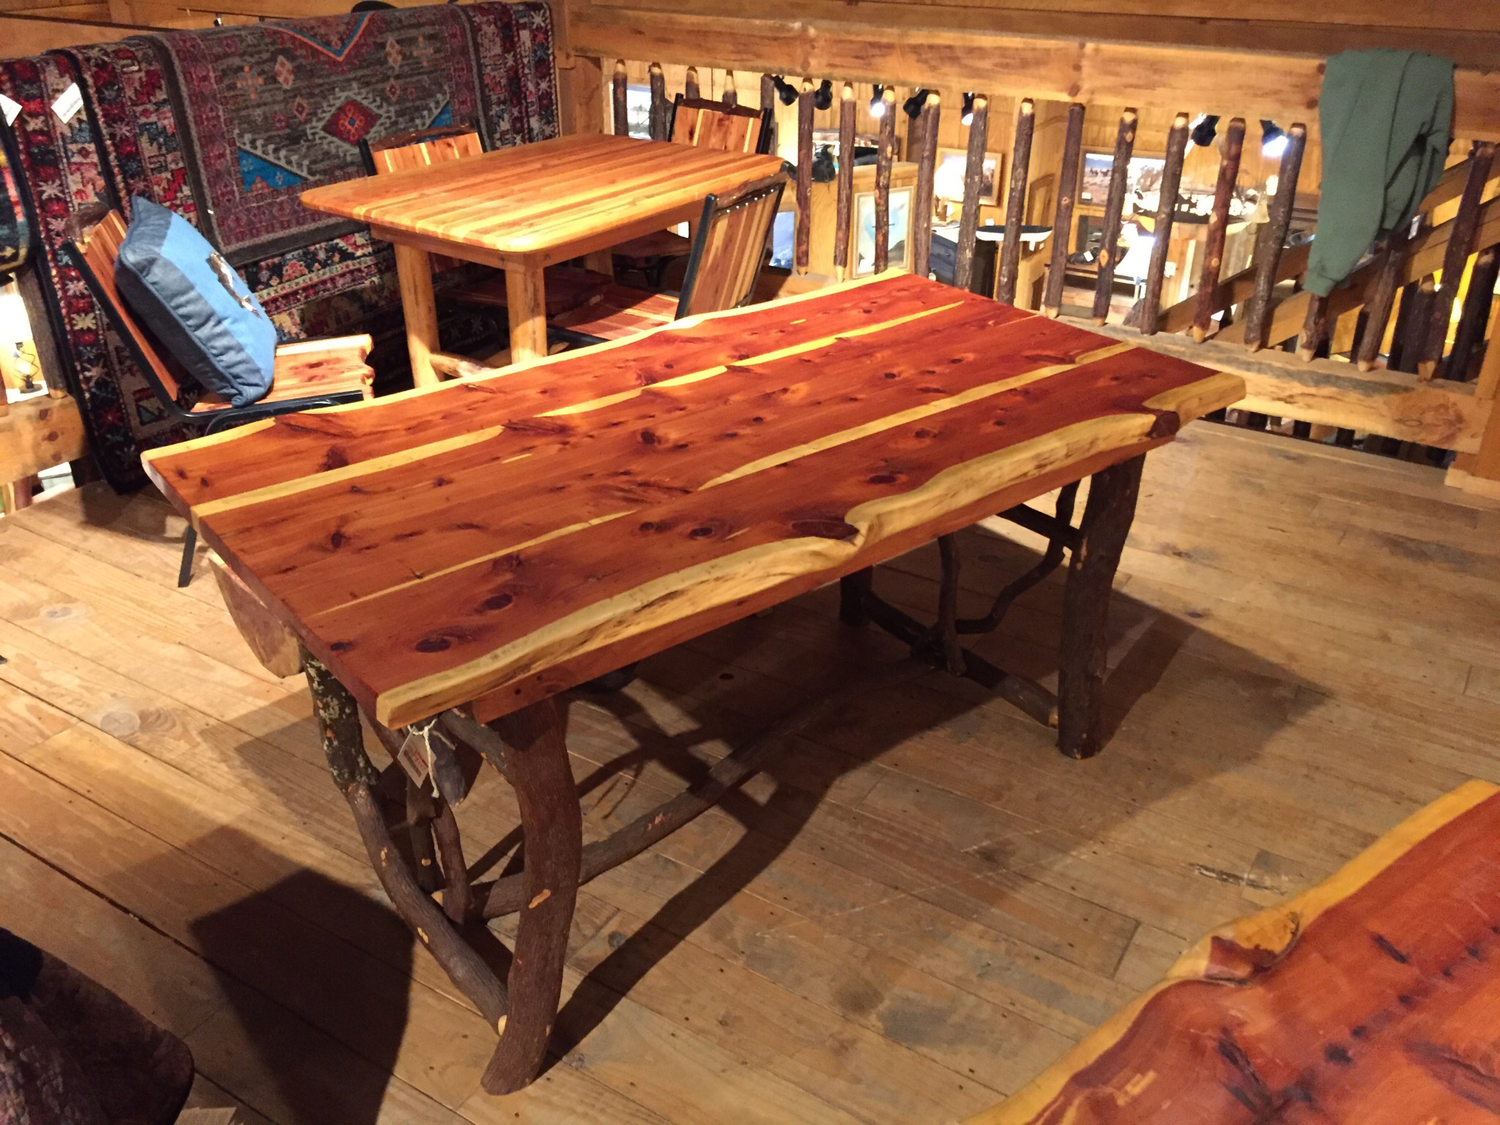 Cedar Table with Chairs